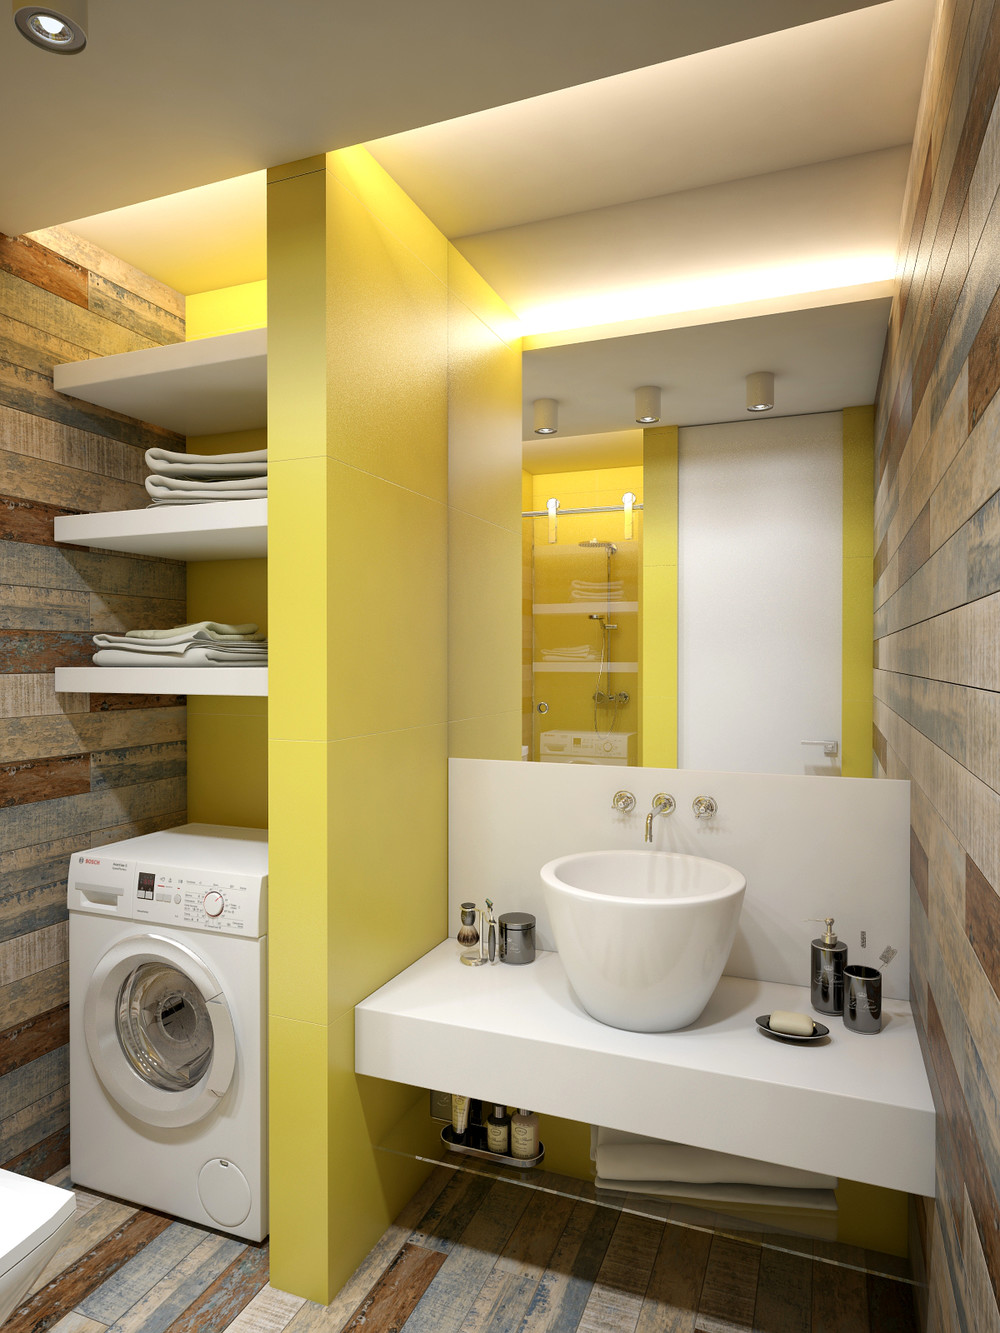 Small Apartment Decorating Ideas With Yellow Shades - RooHome